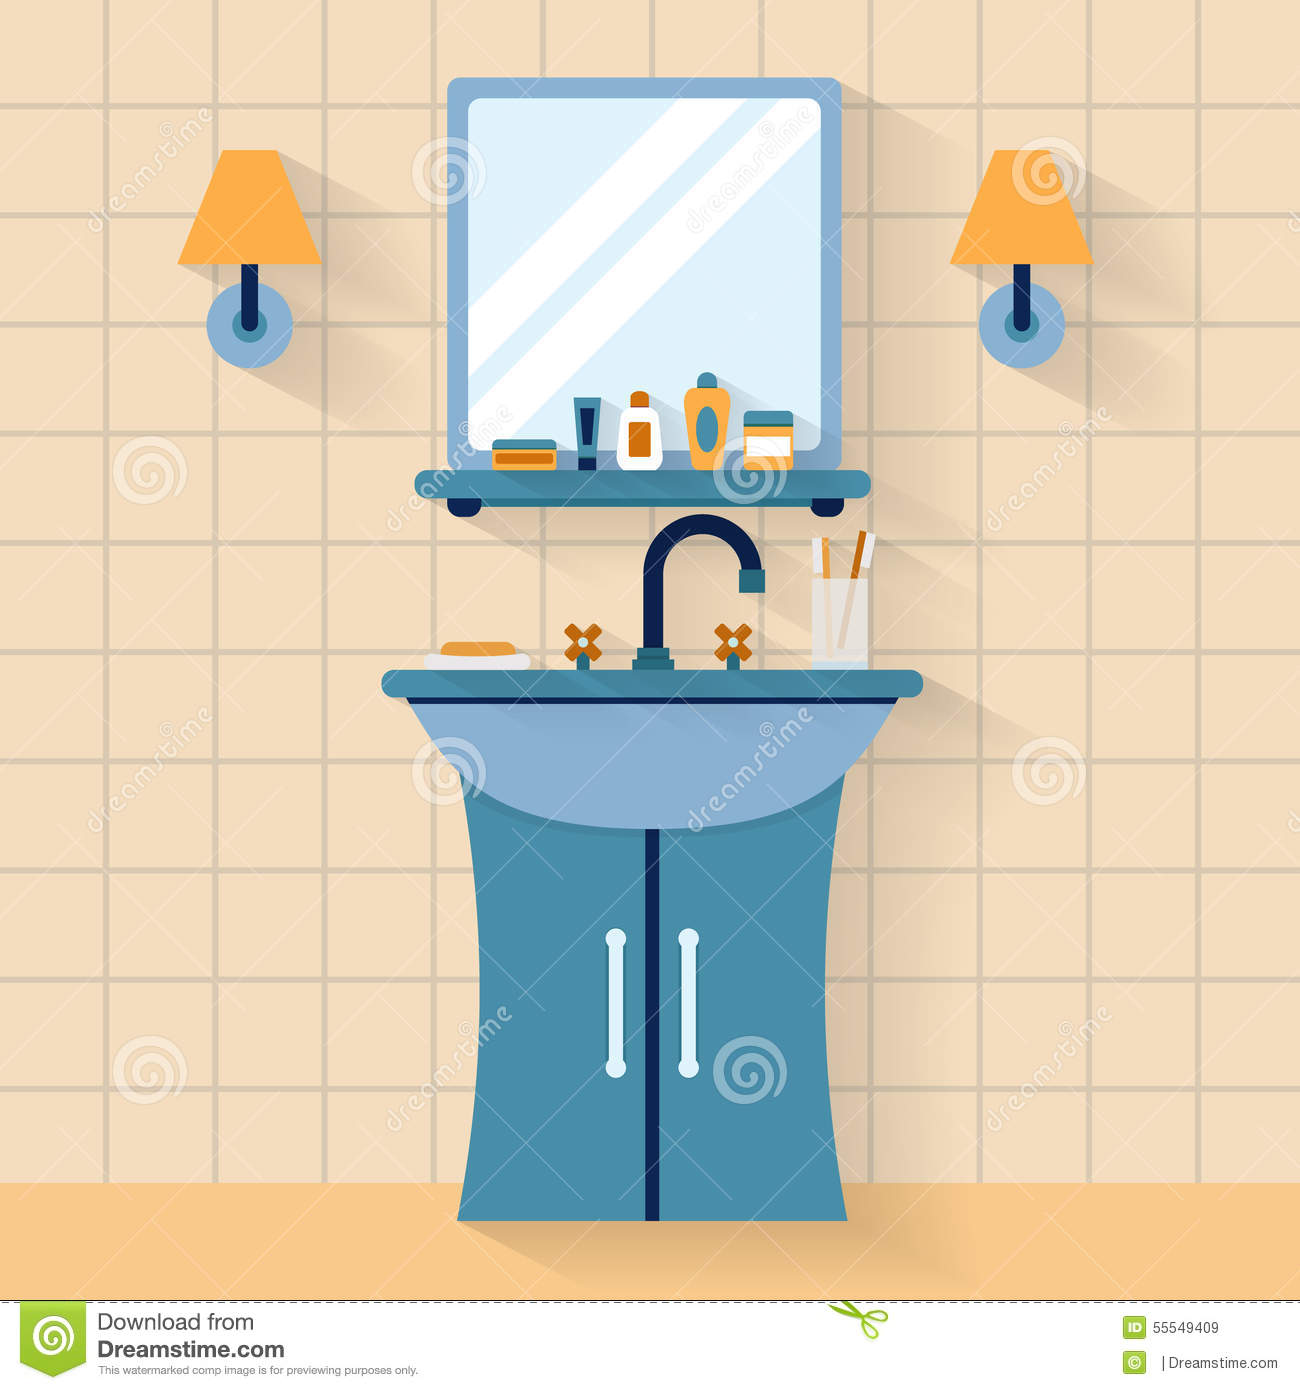 Bathroom sink clipart 20 free Cliparts | Download images ...